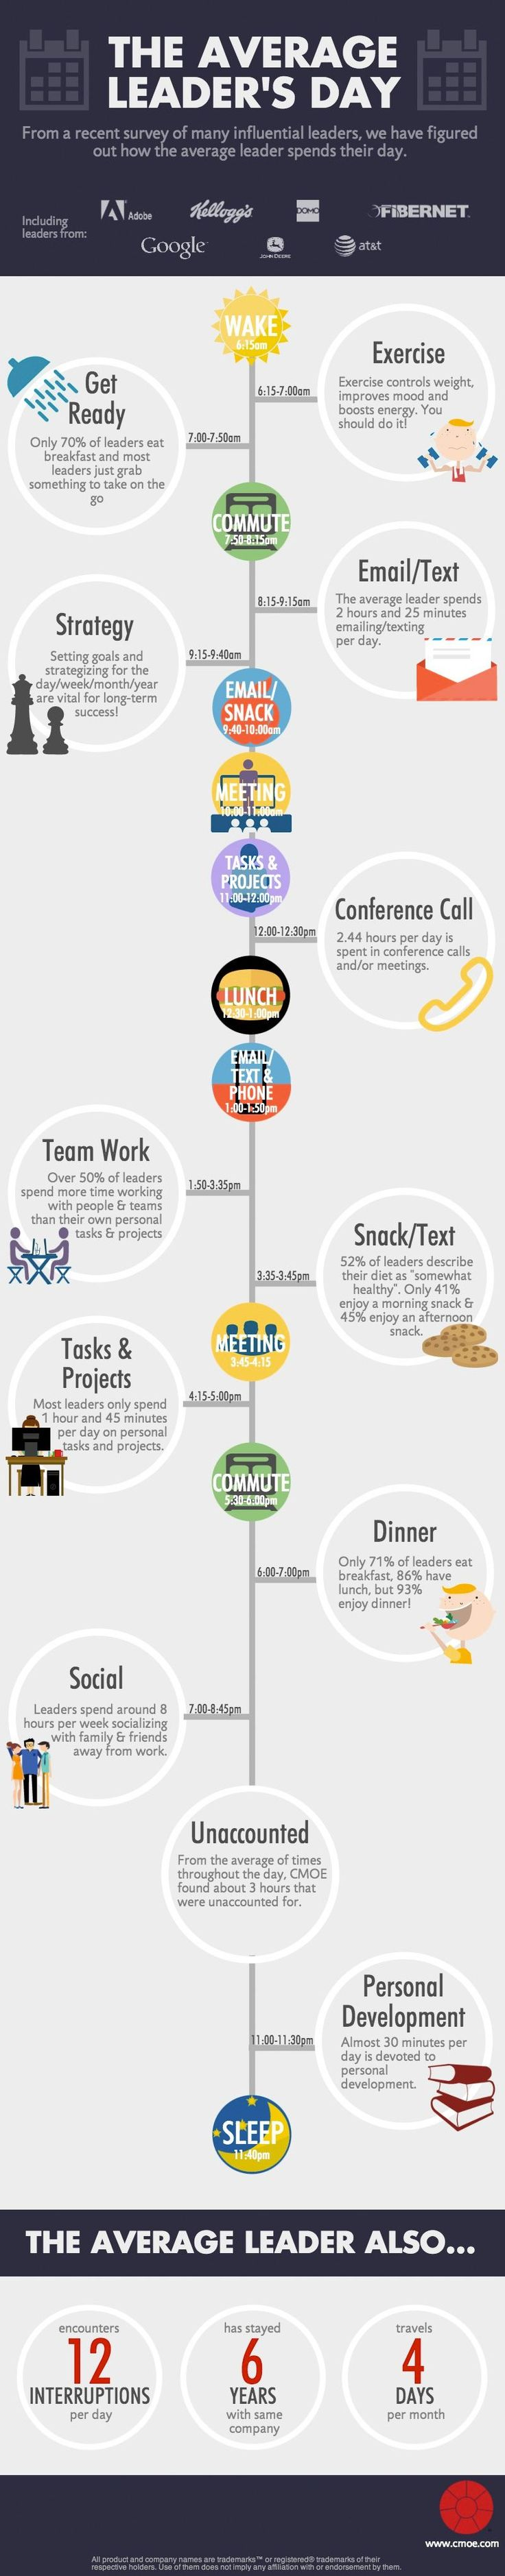 How Fortune 500 Leaders spend their day